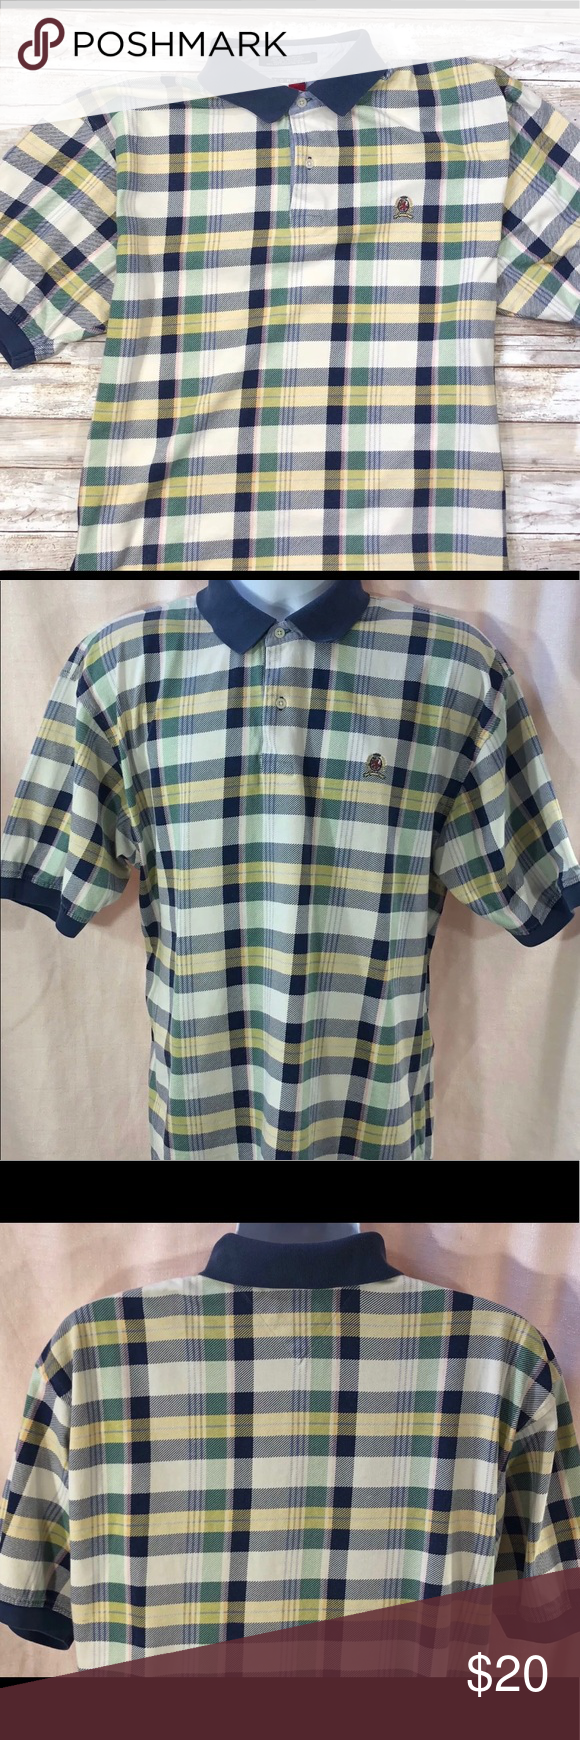 bfda6a6c Vintage Men's Plaid Tommy Hilfiger Polo Large Vintage Tommy Hilfiger Green White  Blue Plaid Checkered Short Sleeve Polo Shirt Large * This item is in ...